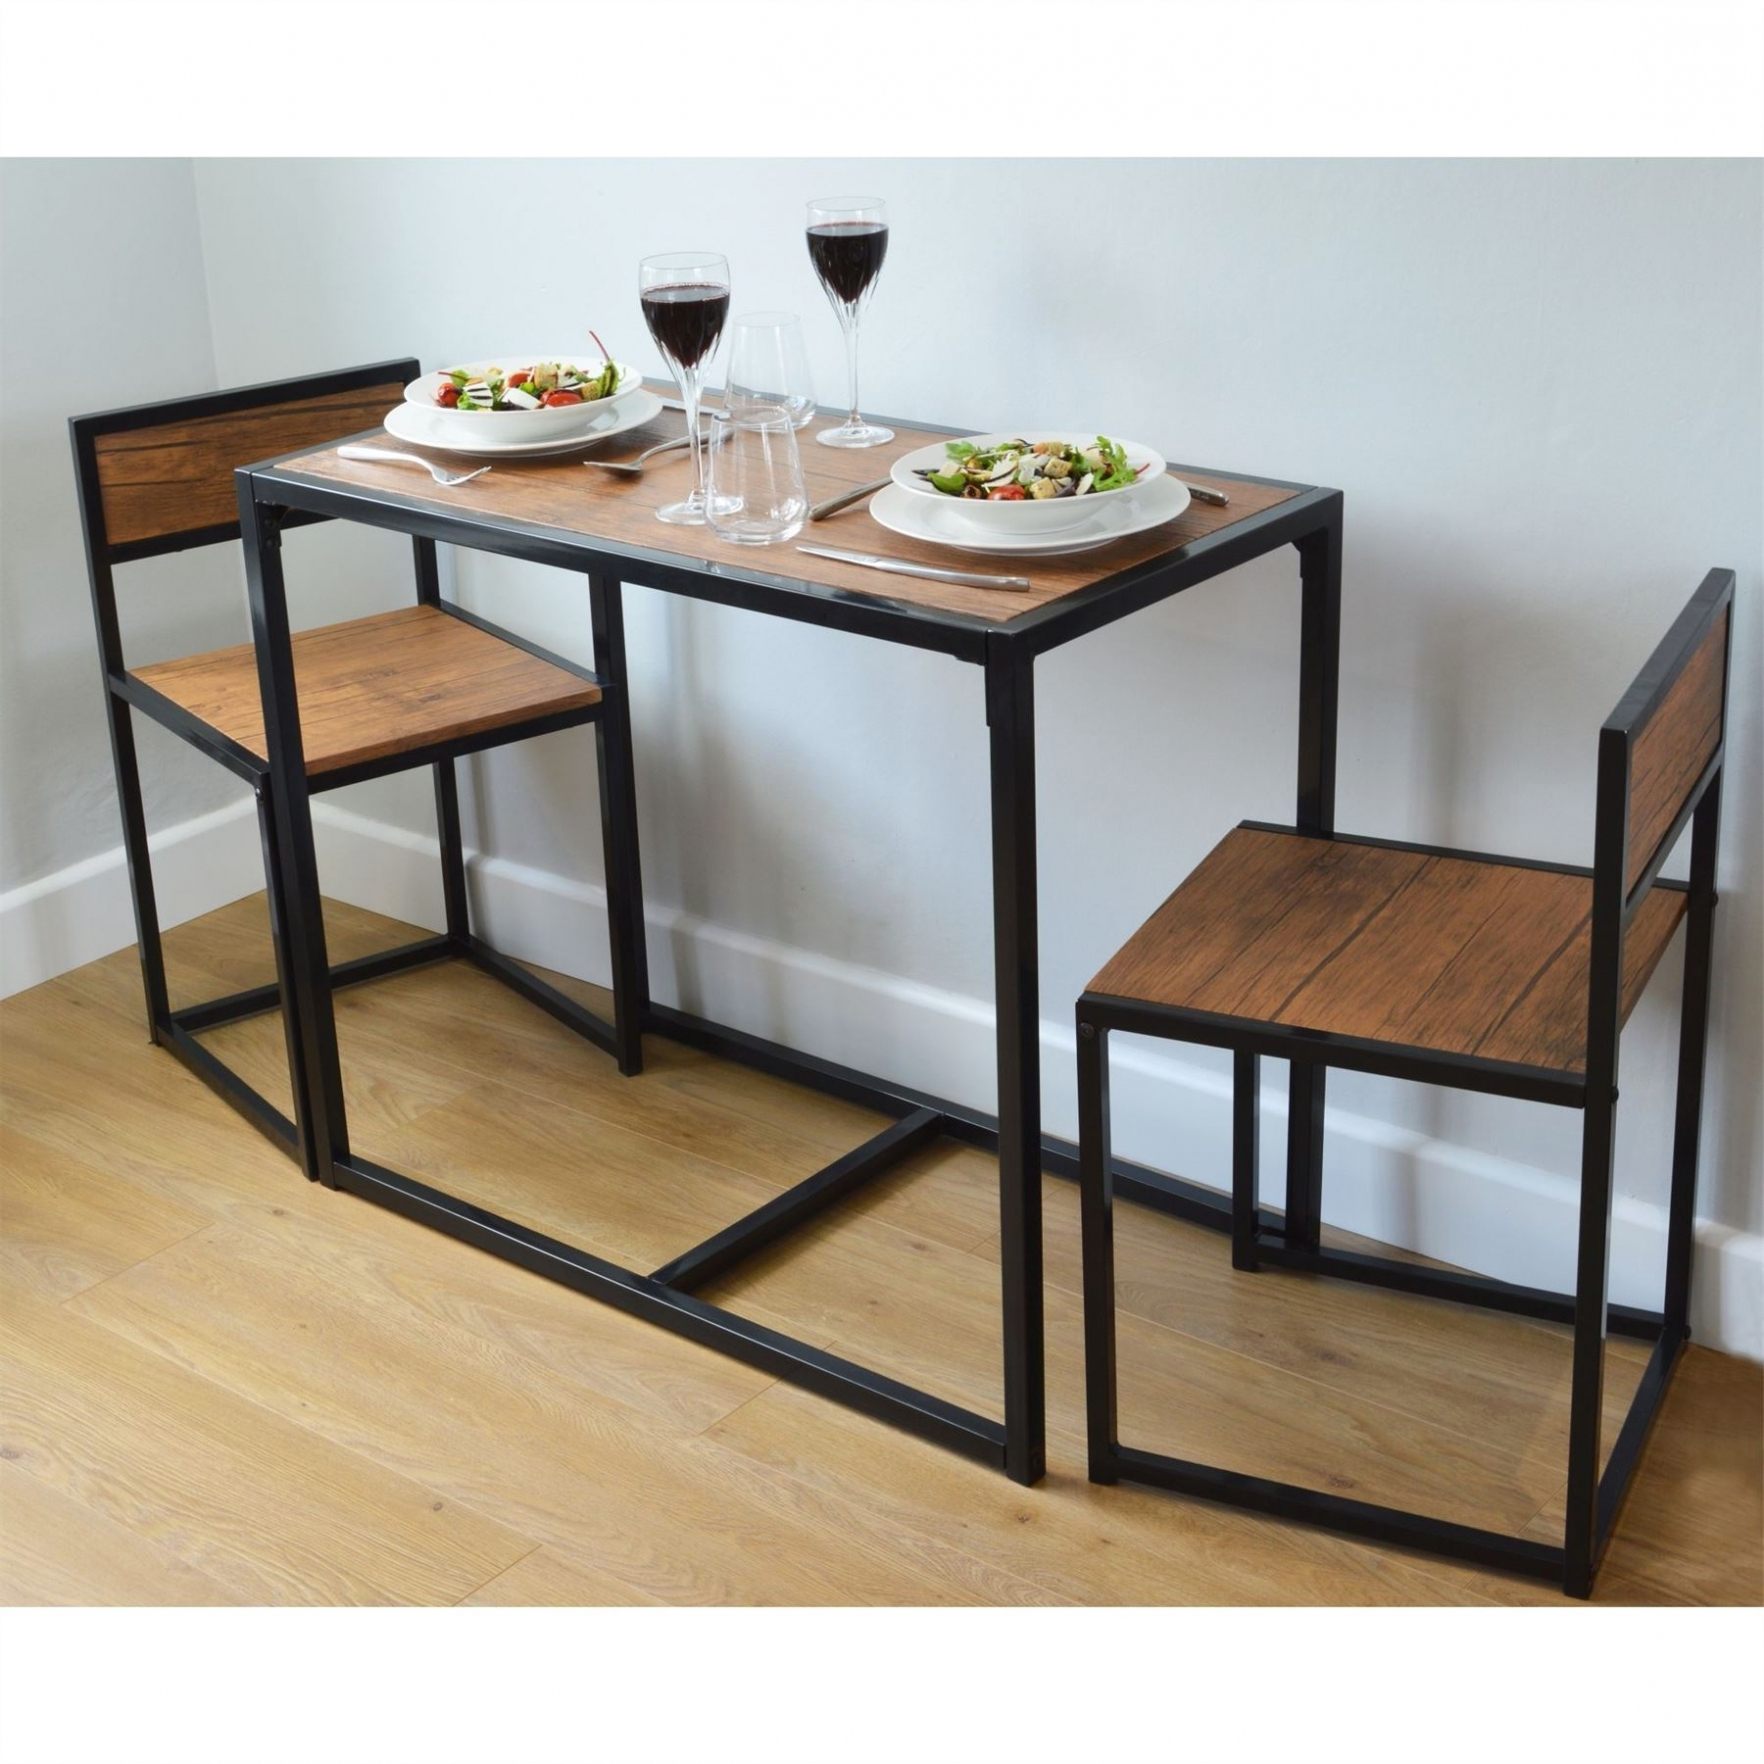 Famous Two Person Dining Tables Intended For Dining: 2 Person Space Saving, Compact, Kitchen Dining Table (View 3 of 25)